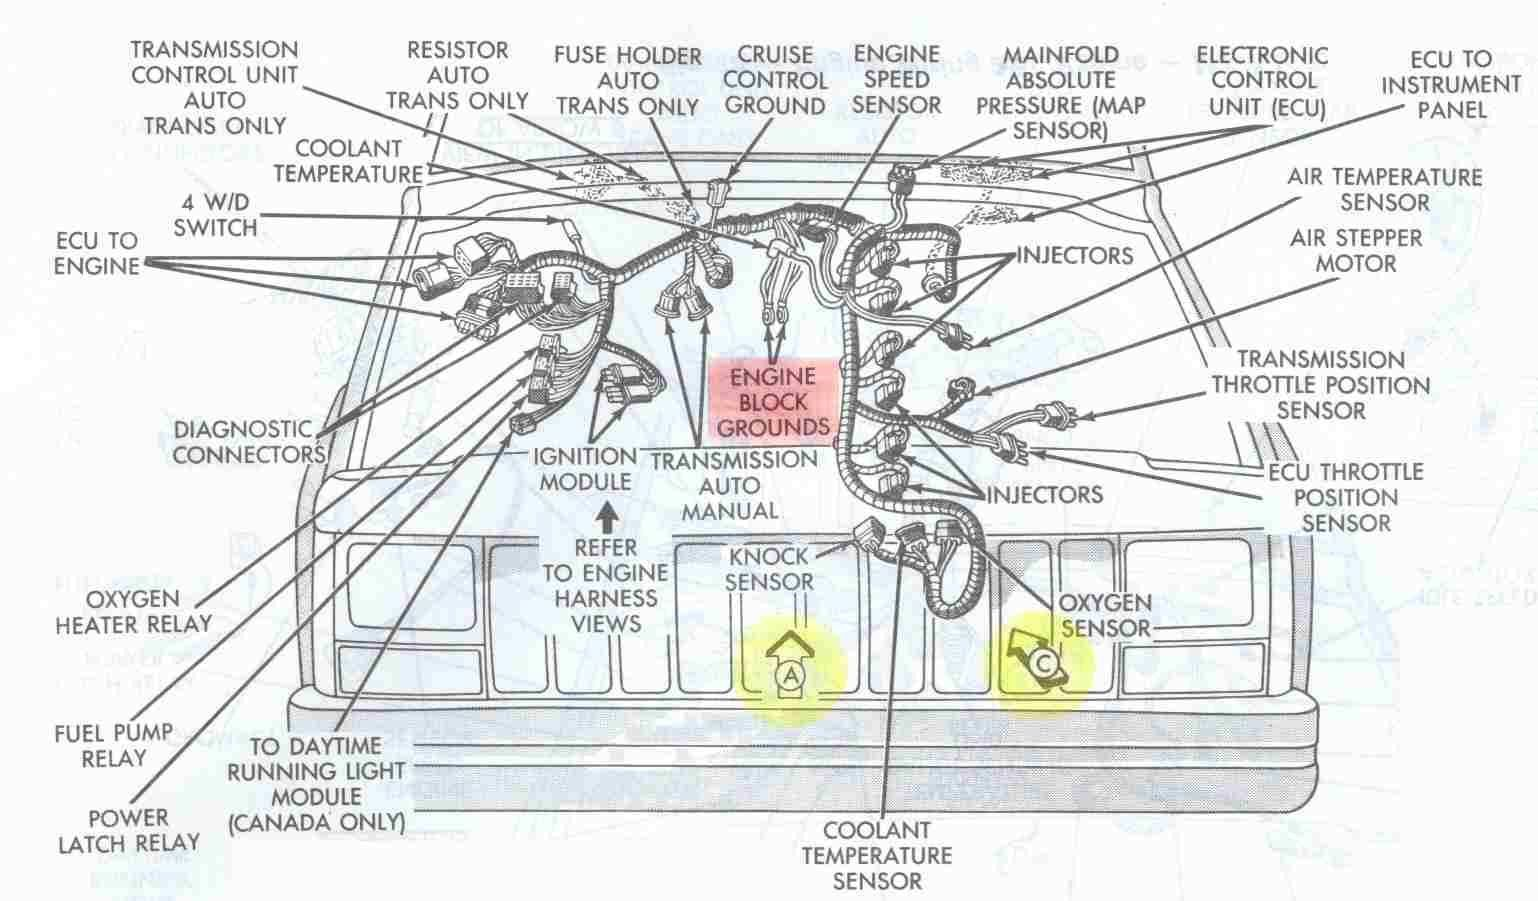 1996 Jeep Cherokee Engine Diagram Wiring Diagrams Post Core Core Michelegori It